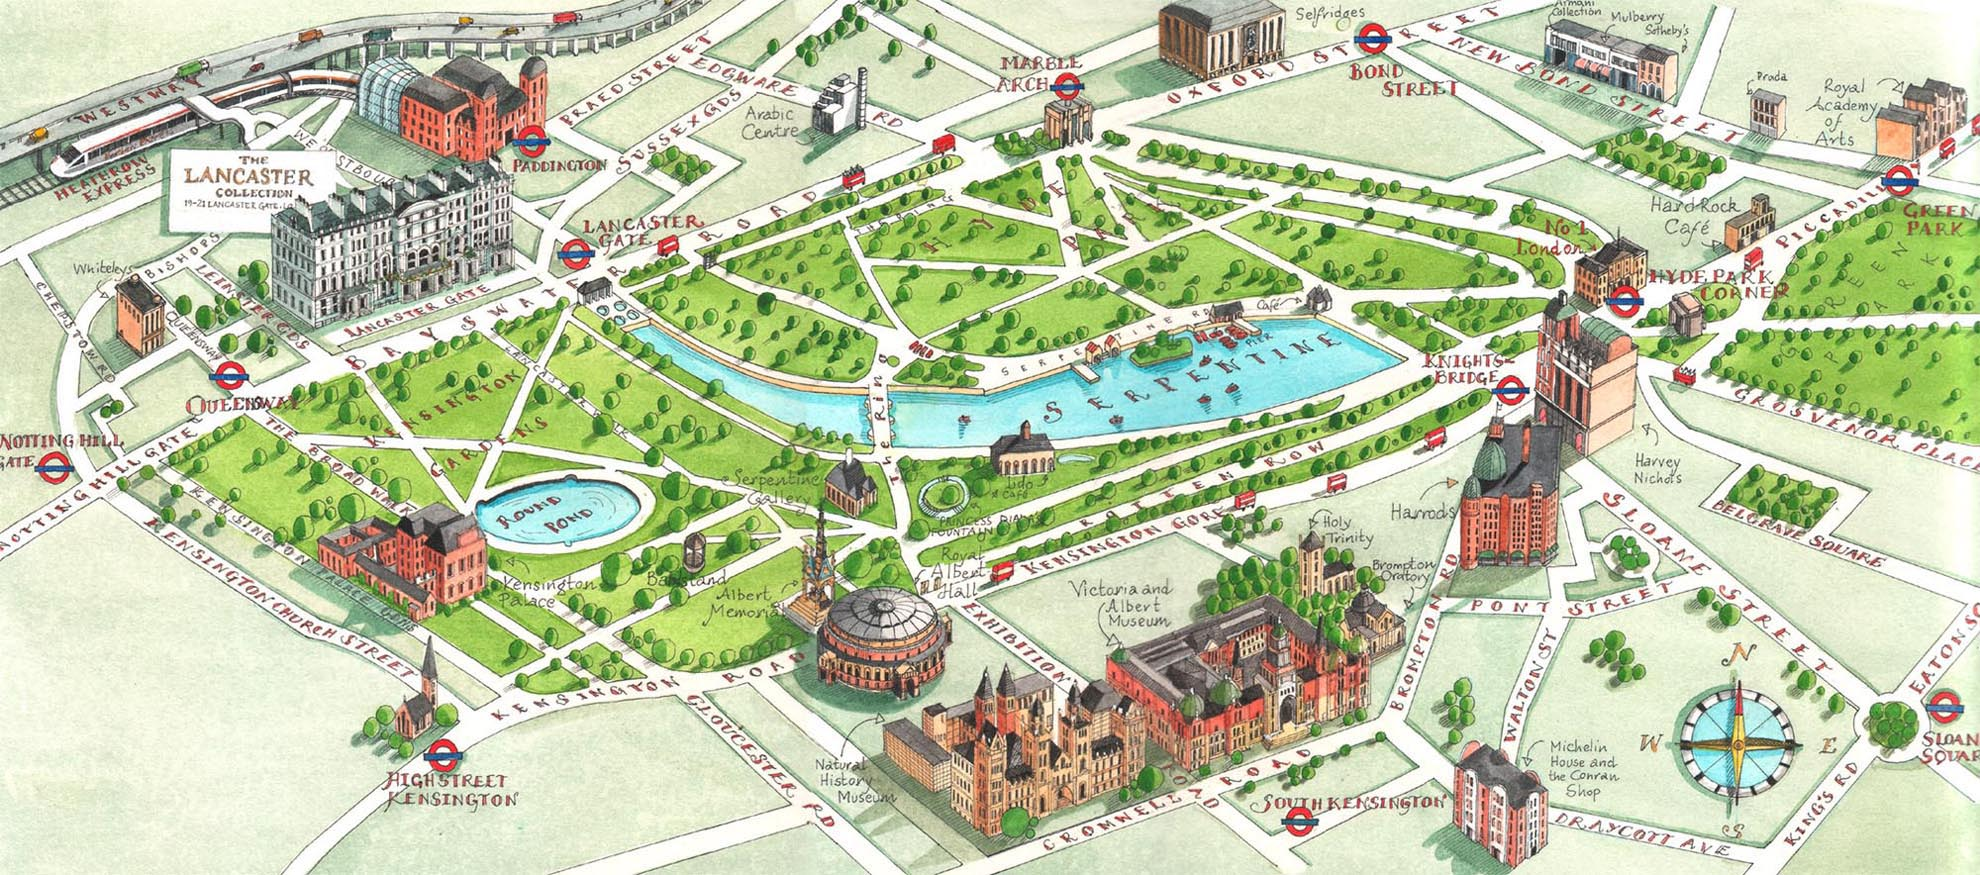 London-Hyde-Park-map.jpg